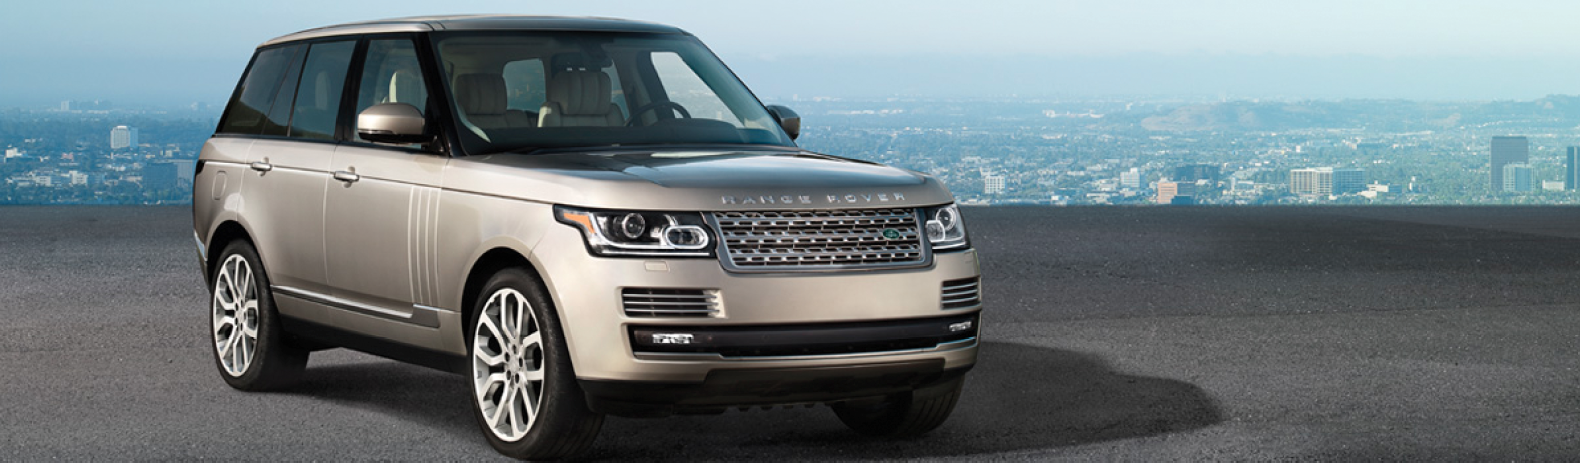 marketing case land rover How land rover convinced bourdain to try product placement vp-marketing for jaguar land rover north america that is another reason why in this case he accepted this type of partnership and thought it would work for him.